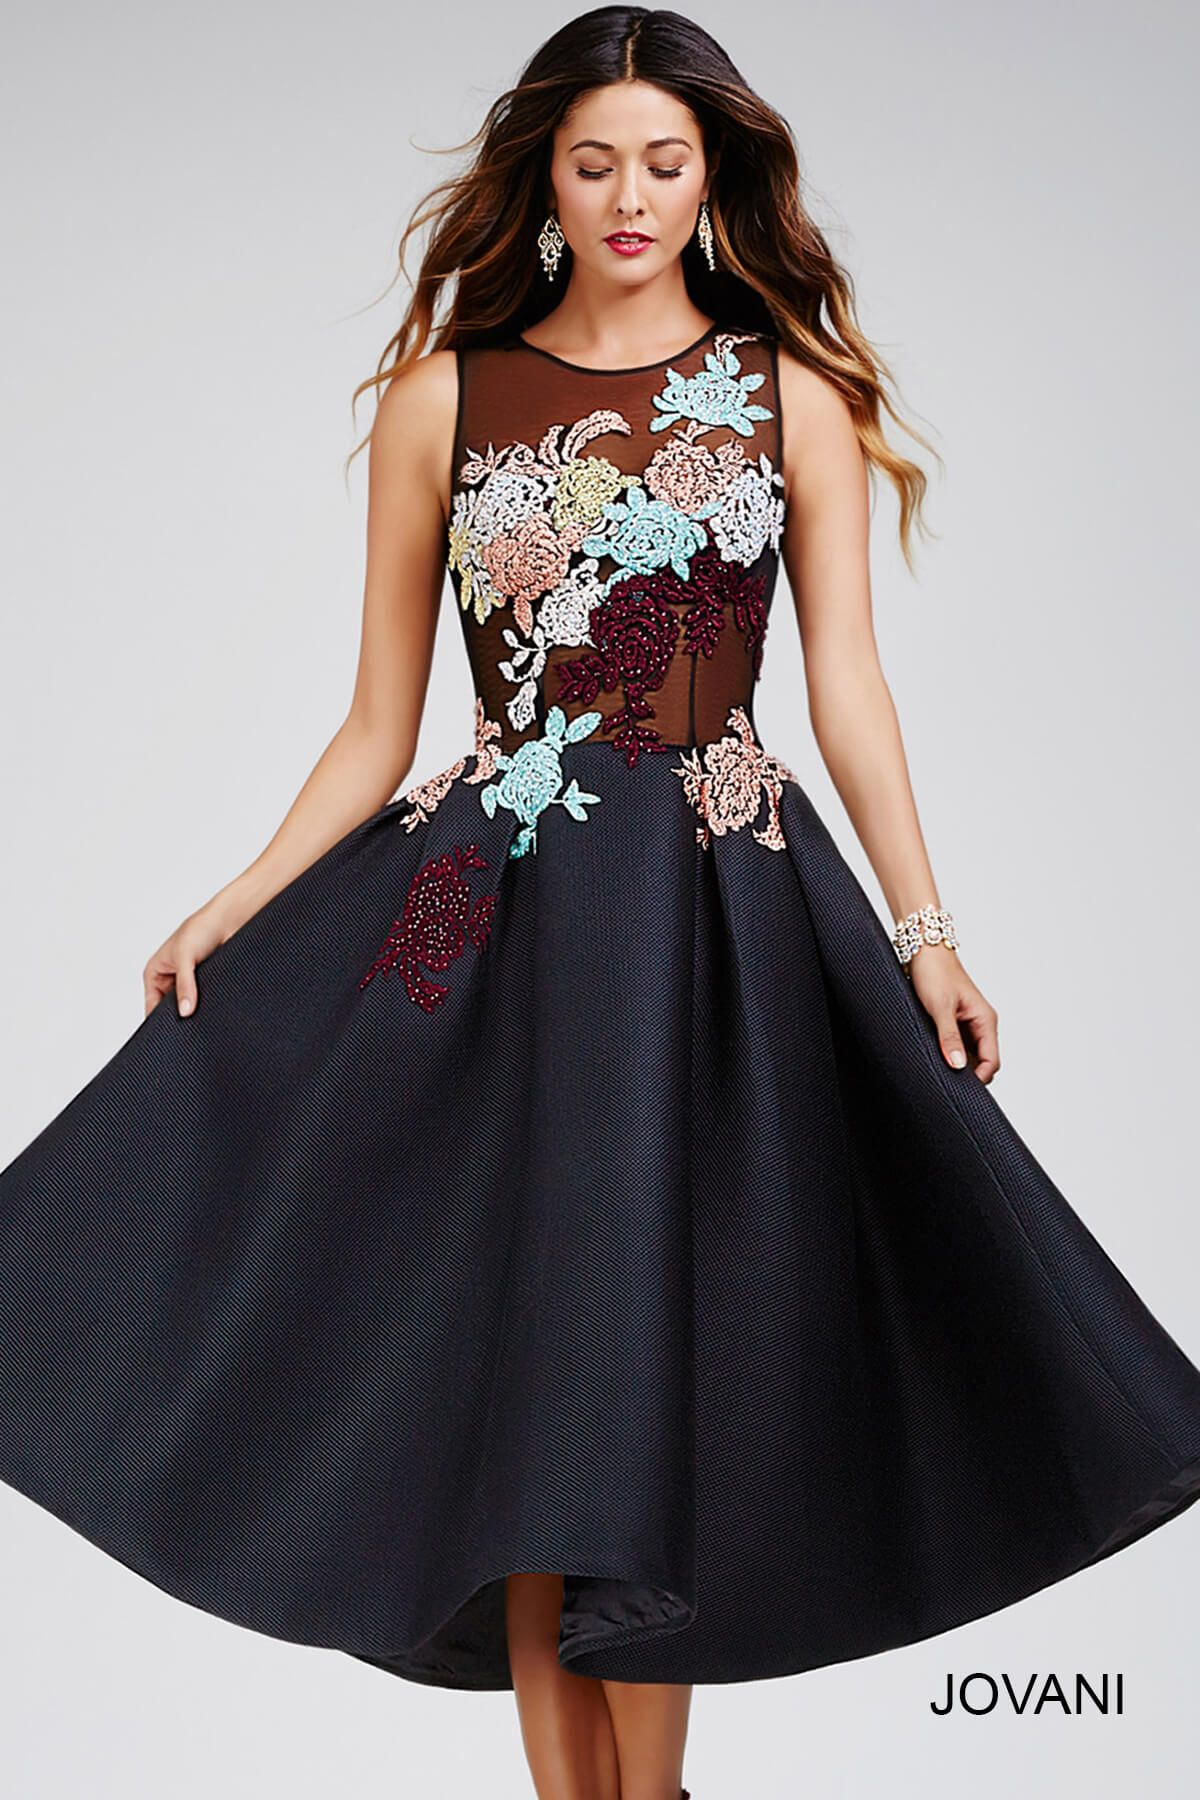 Black dress under knee - Find This Pin And More On Perfect Prom 2016 Cocktail Dresses Black Below The Knee